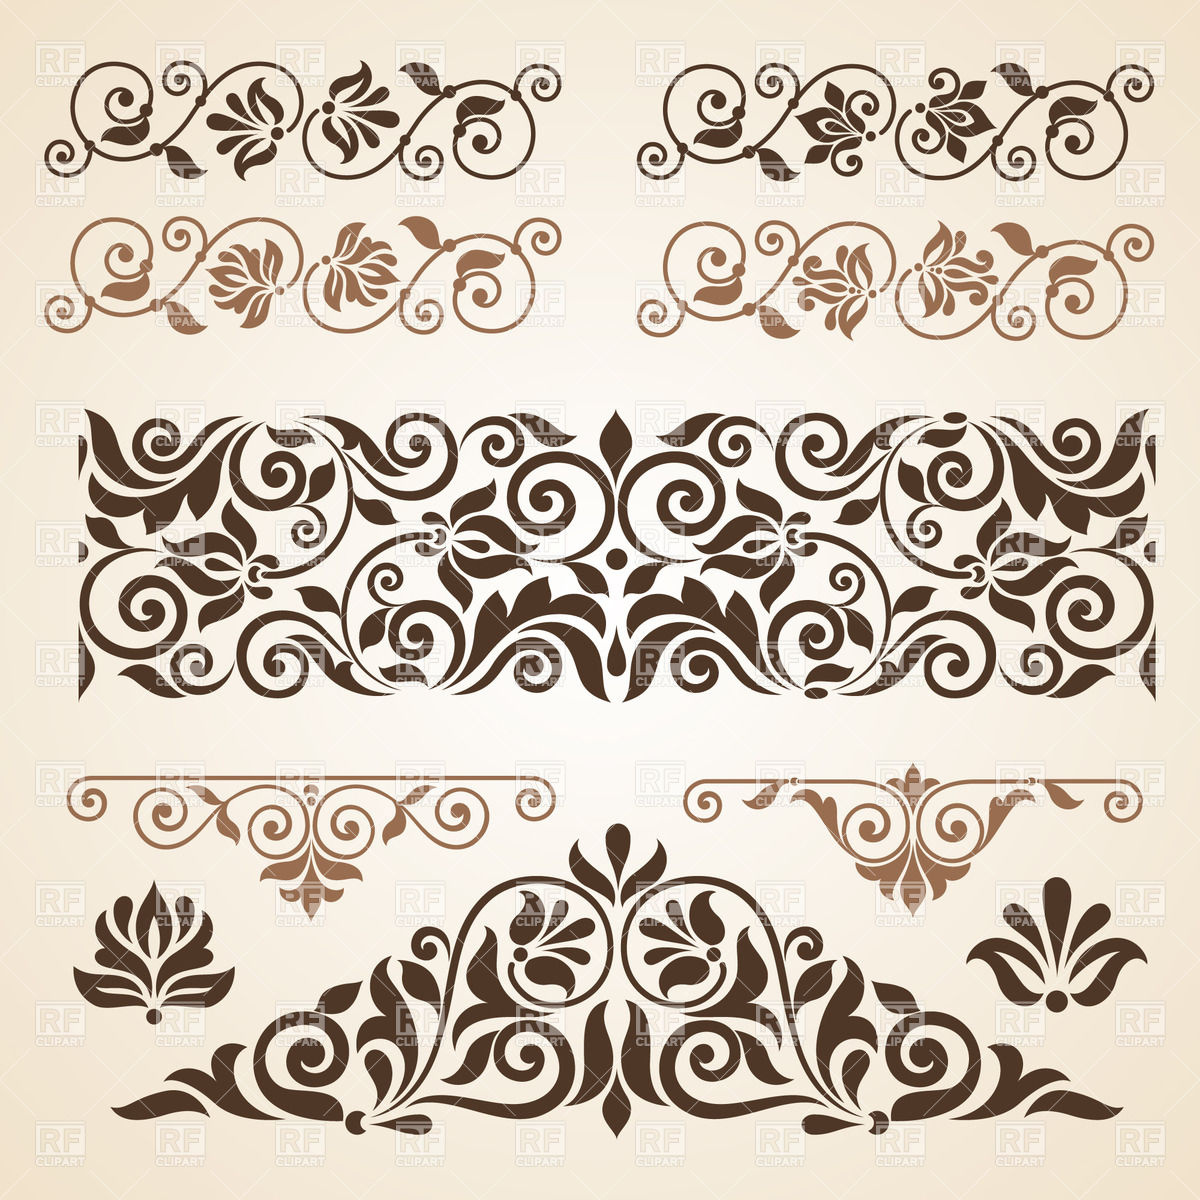 Vintage curly horizontal borders, 29051, Borders and Frames.